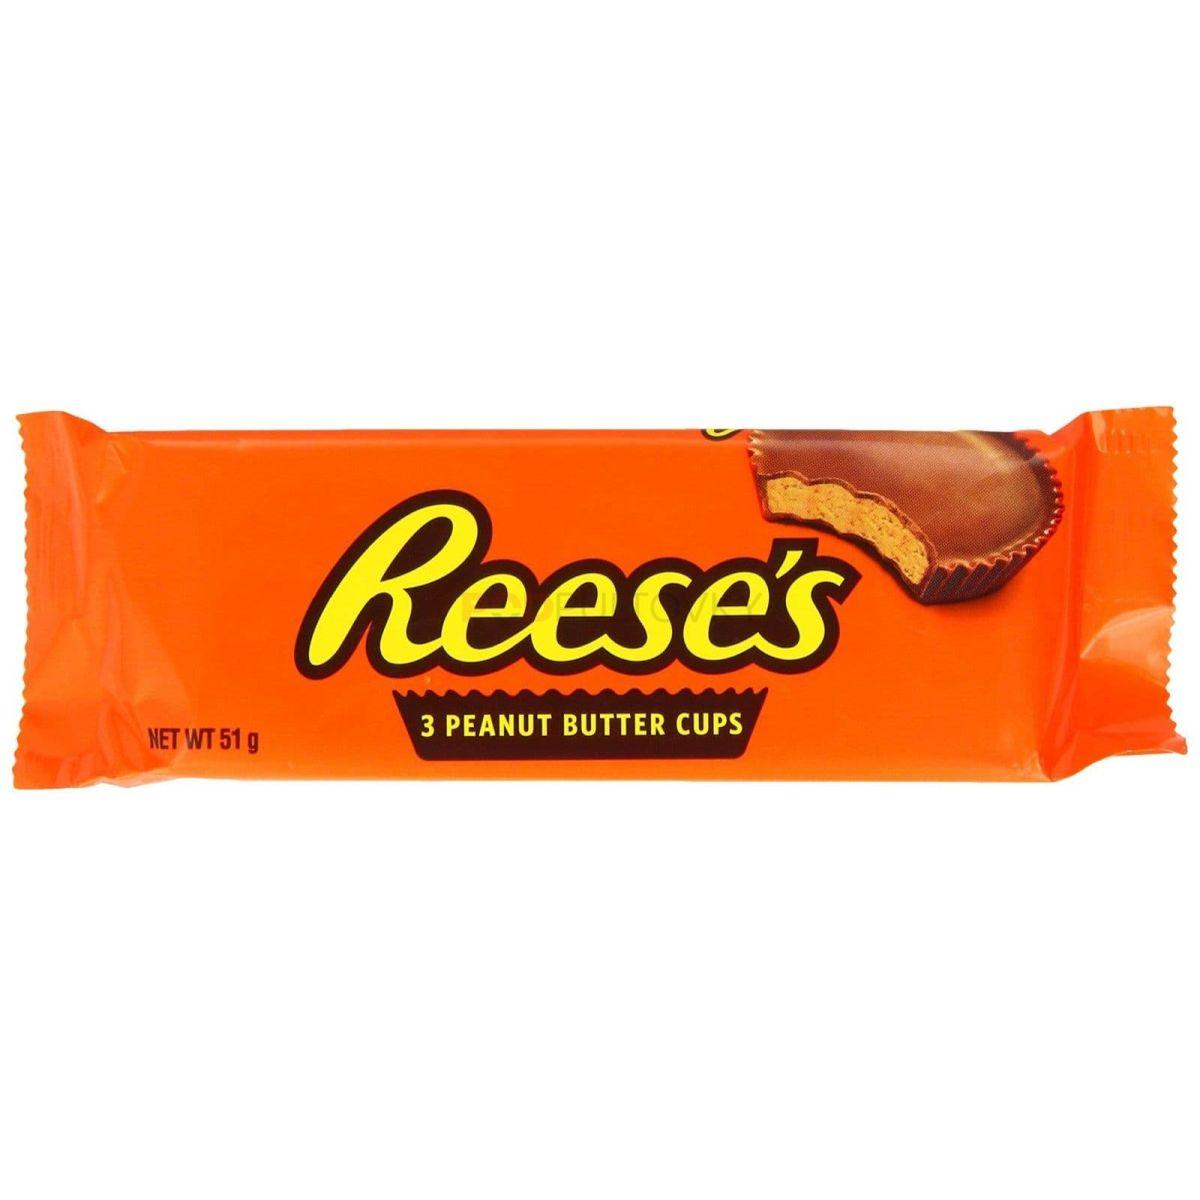 Reese's 3 Peanut Butter Cups 51g (USA)